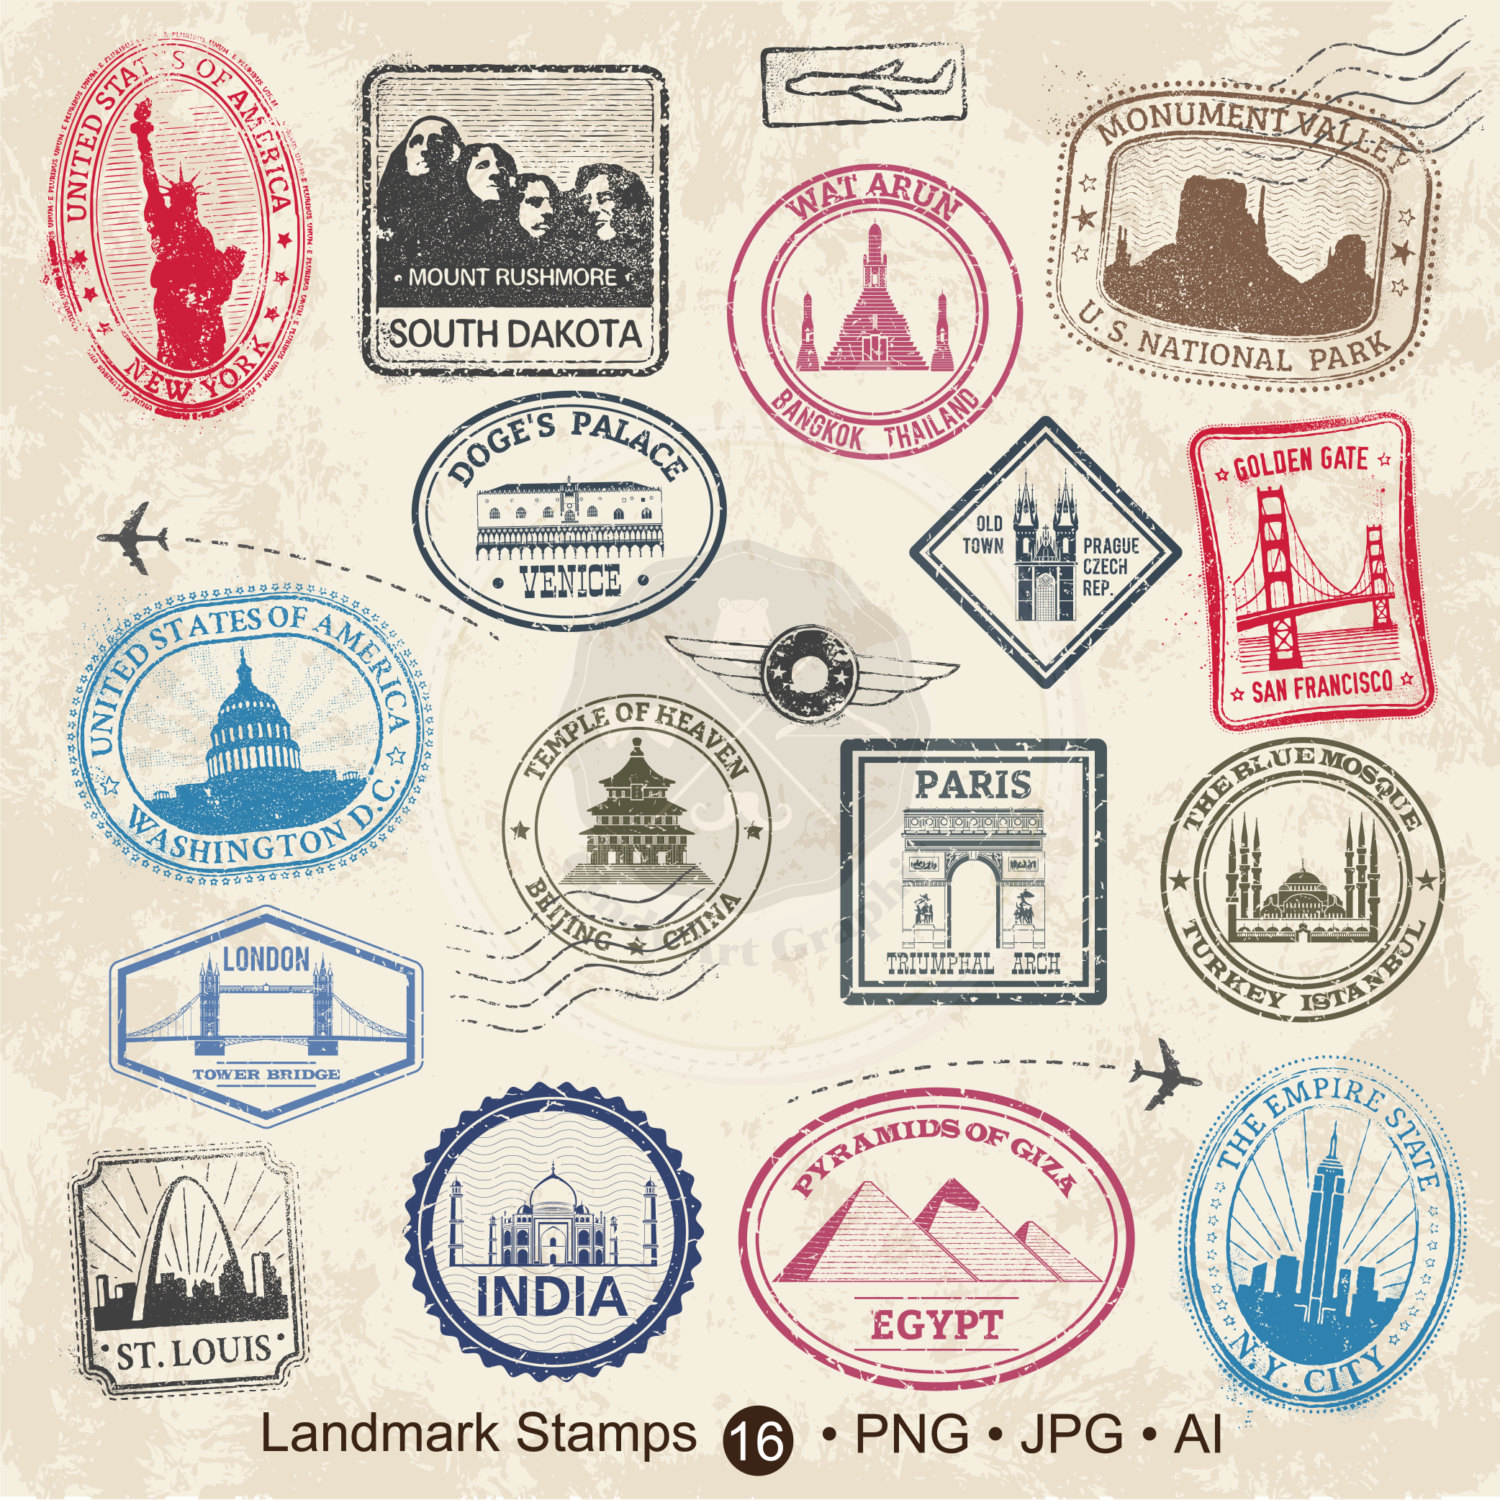 hight resolution of landmark stamps clipart travel stamps clipart passport ctamps